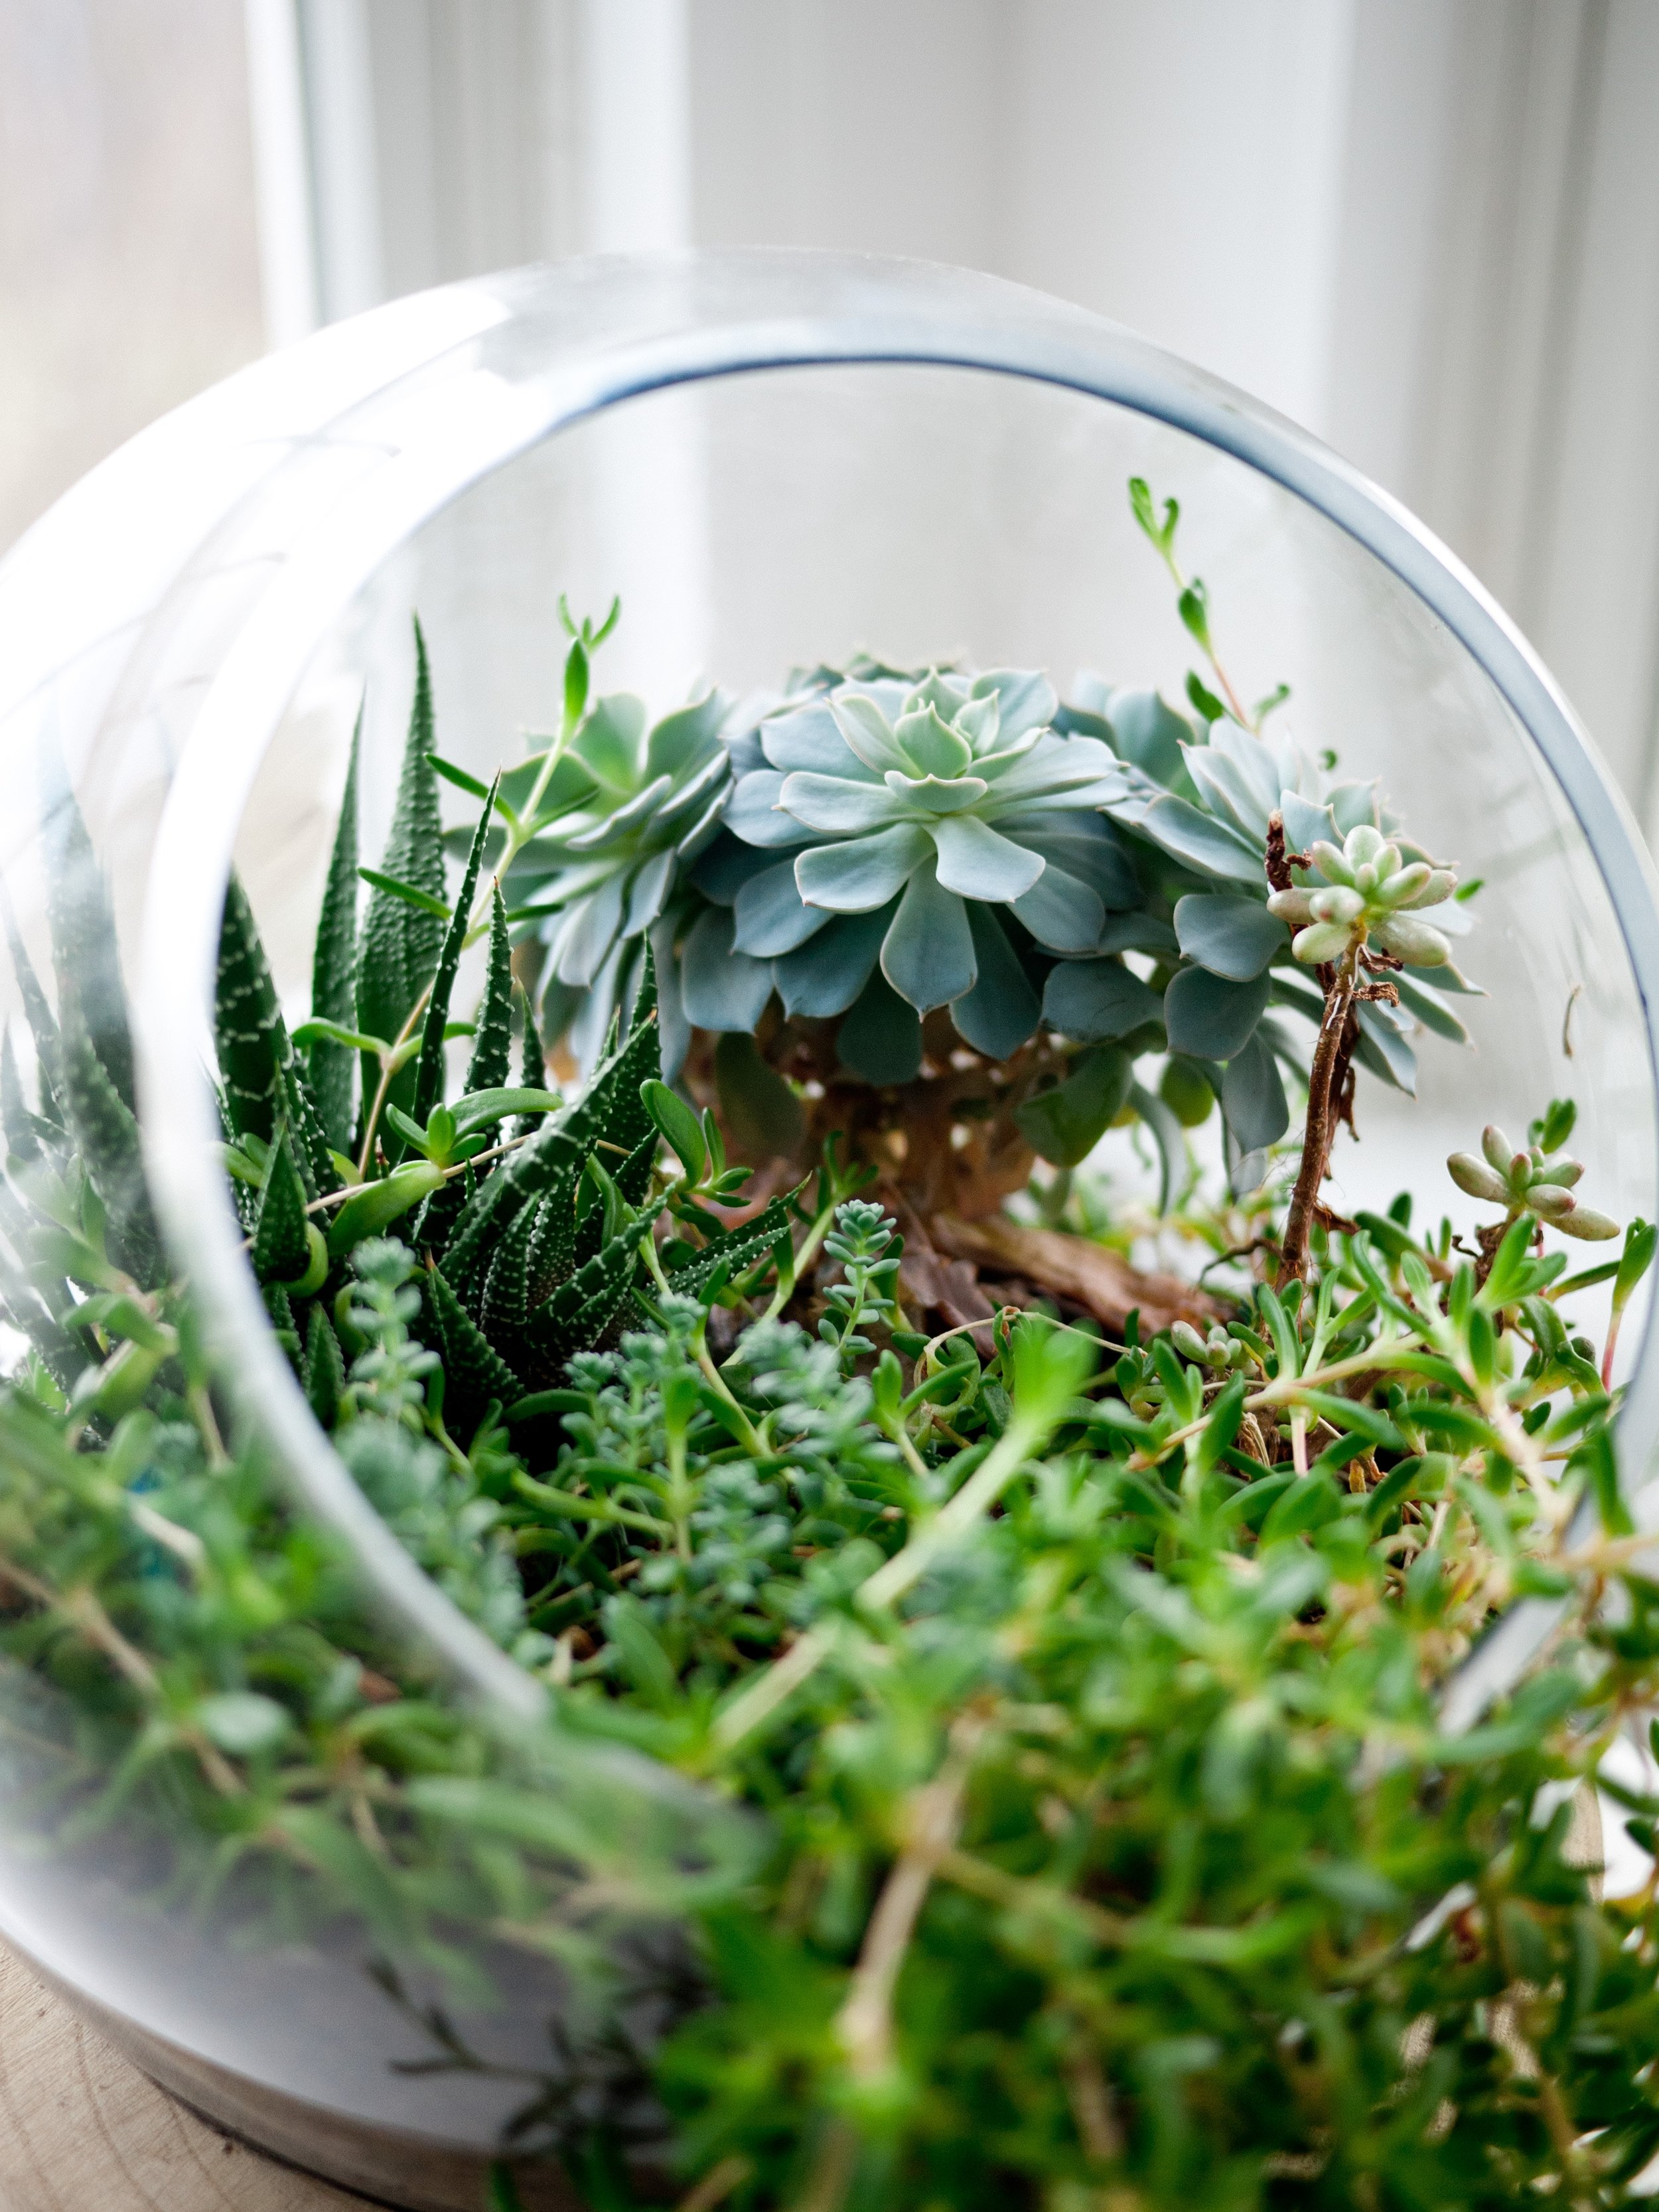 Design and create your own living terrarium - Under the guidance of the delightful Lucinda aka flower_fairy81, design and create your own fishbowl style planted terrarium, with a little bit of looking after, will last years ! All materials will be included, along with a glass of Aperol Spritz and a selection of tapas dishes freshly prepared in our kitchens. So come, eat, drink, create your terrarium and be merry !